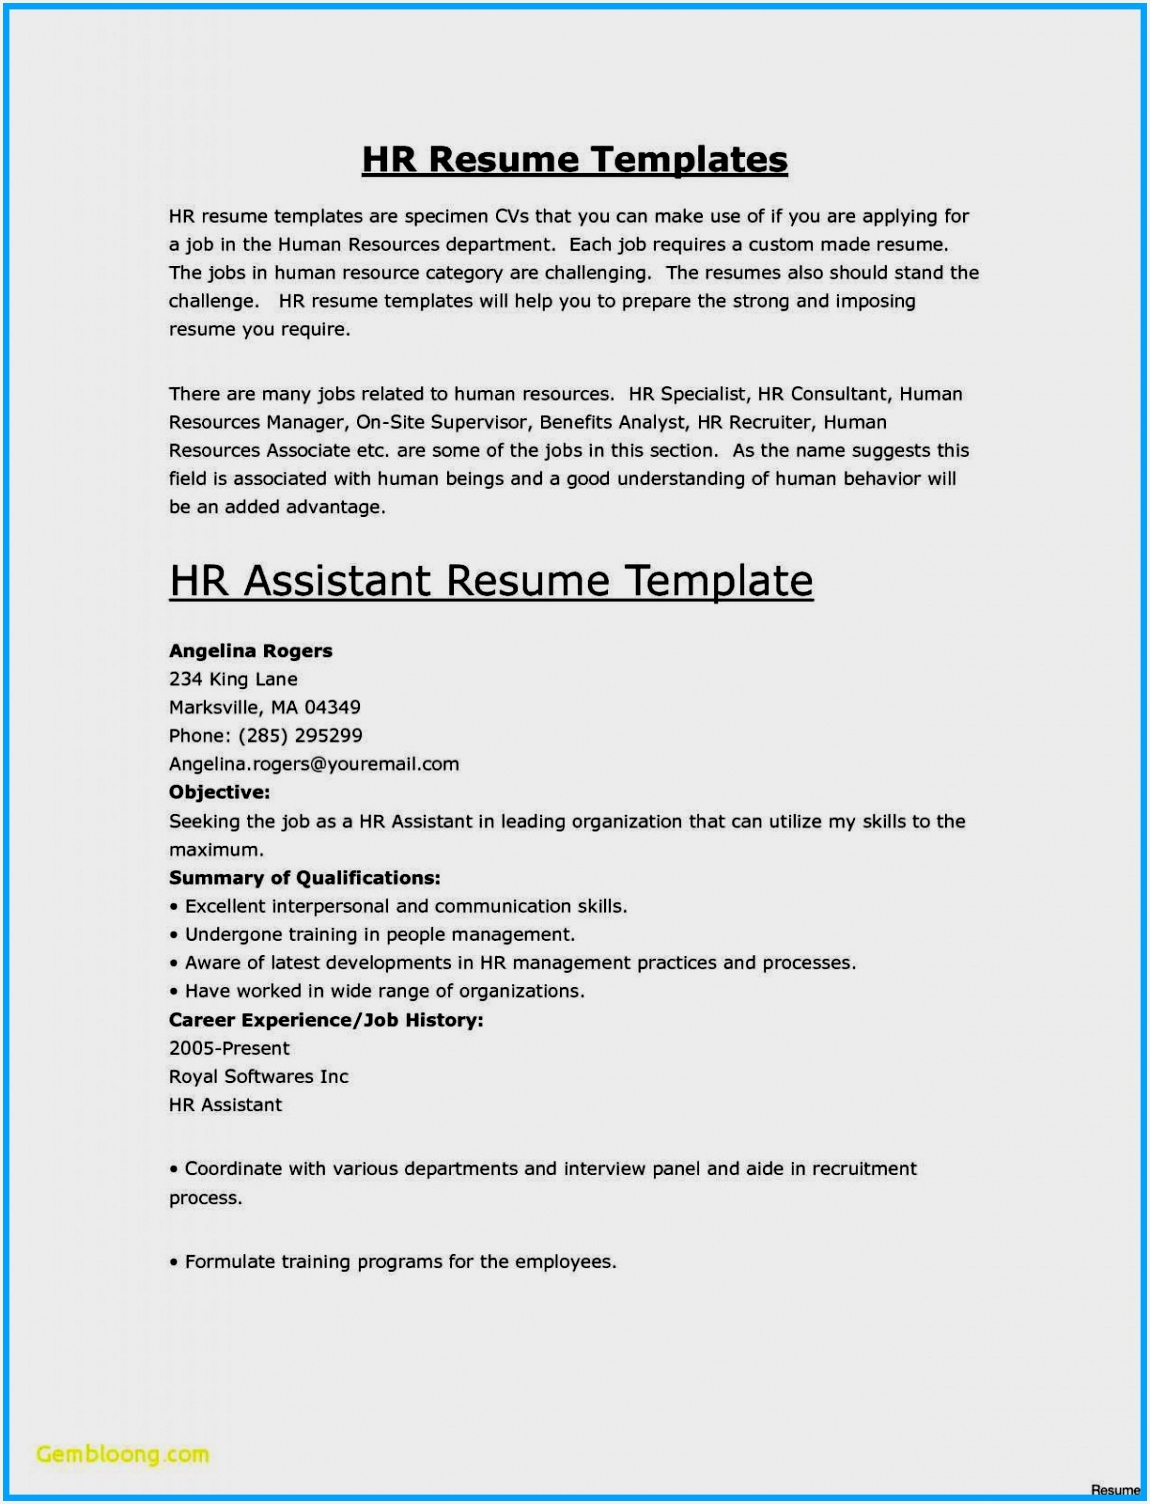 Flawless Resume Sample Doc Cv Template Free Download Doc Best Resume Template Doc Beautiful Beneficial 15041150hIdas